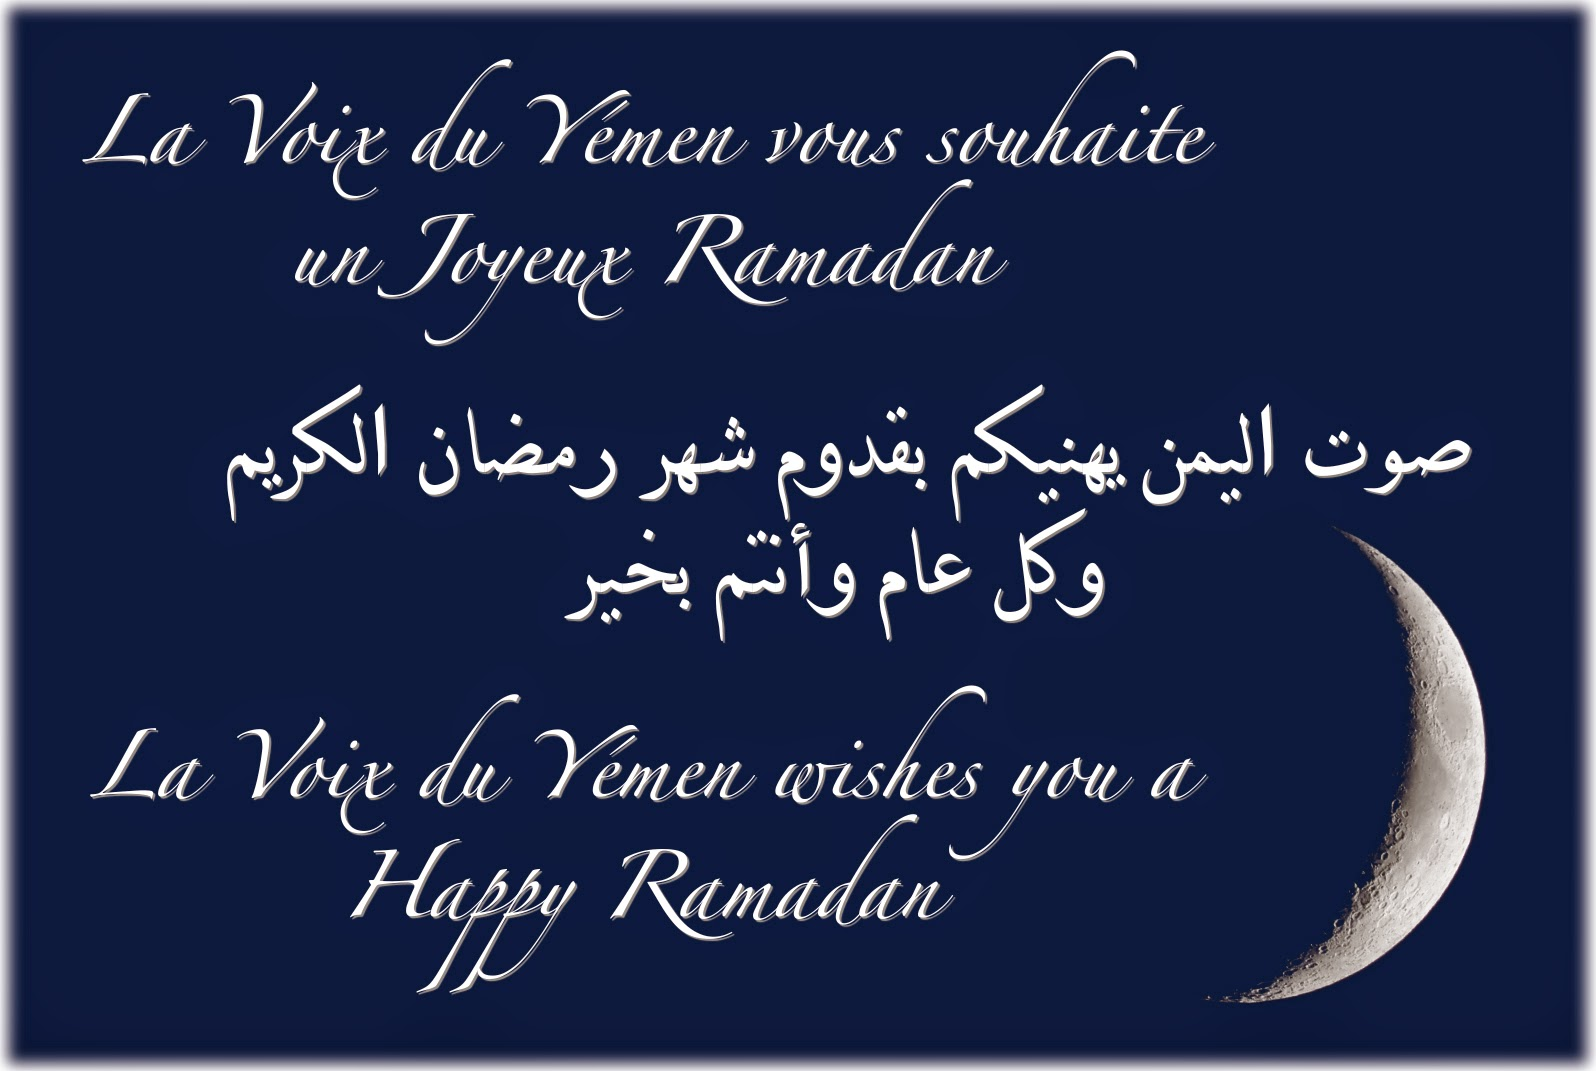 Happy ramadan mubarak messages and dua in arabic with images holy ramadan kareem wishes in arabic greetings quotes kristyandbryce Gallery